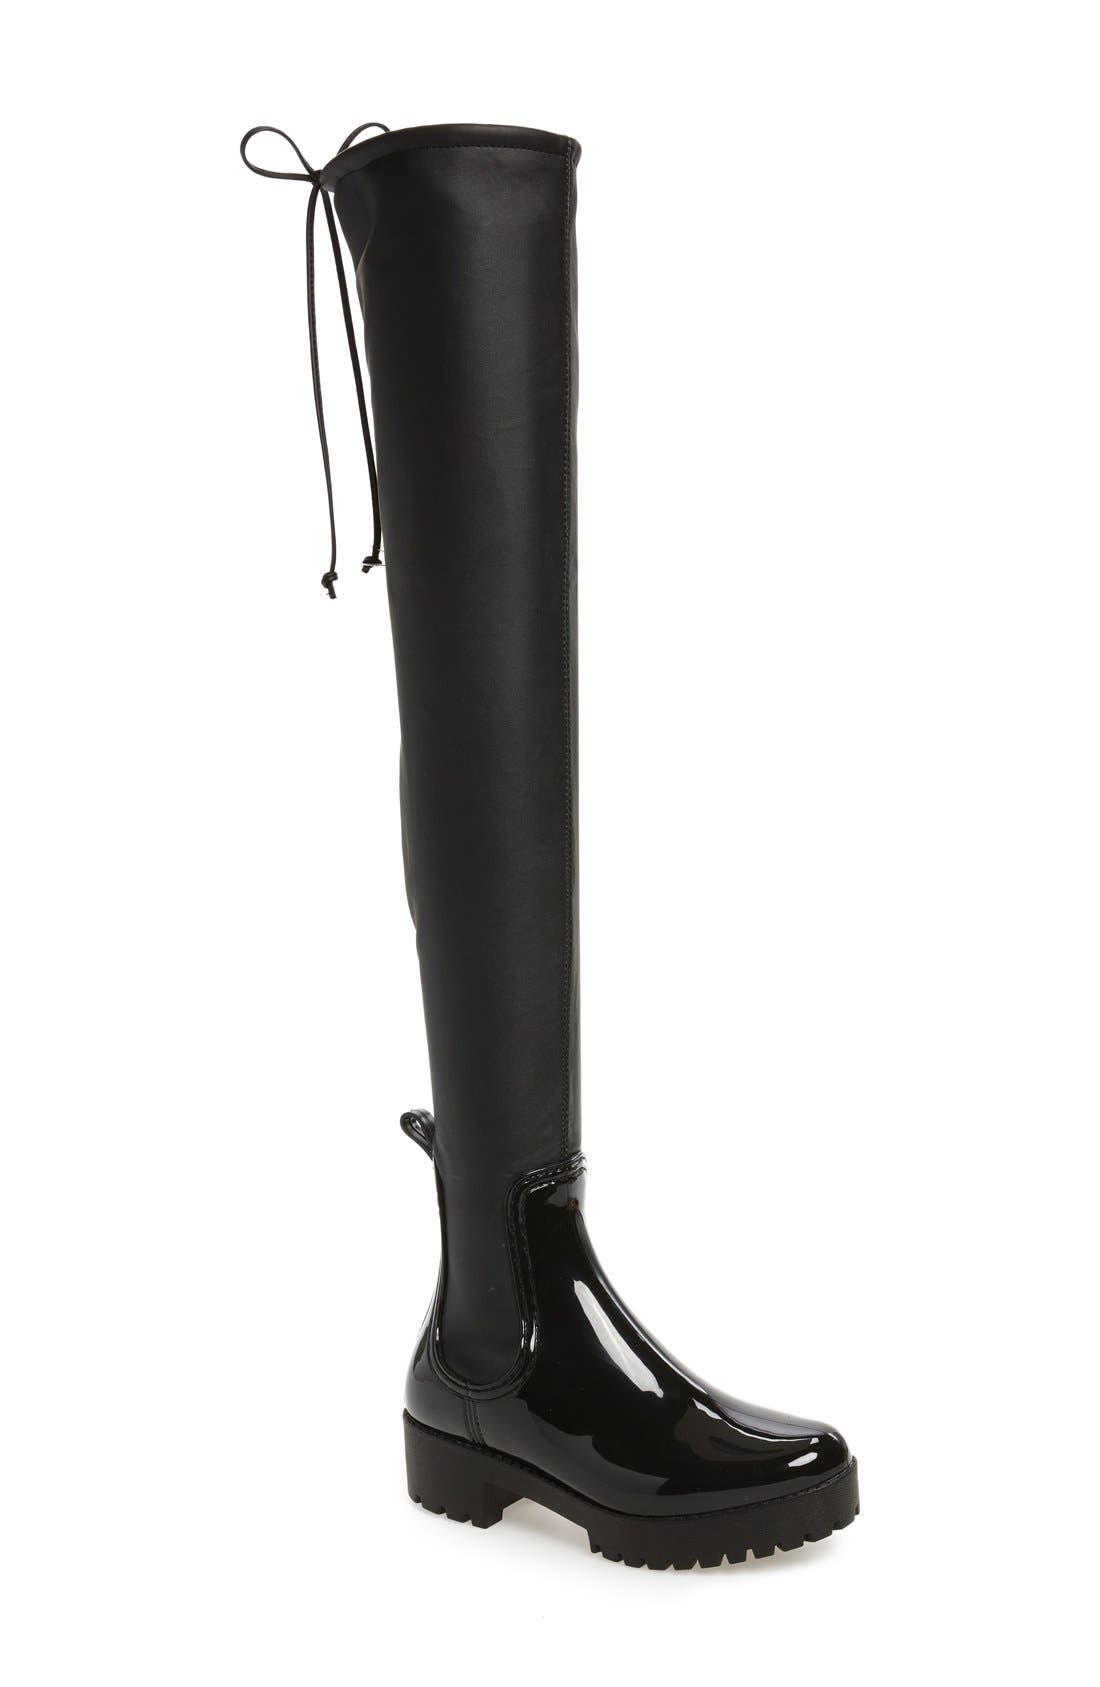 Main Image - Jeffrey Campbell Cloudy Over the Knee Rain Boot (Women)